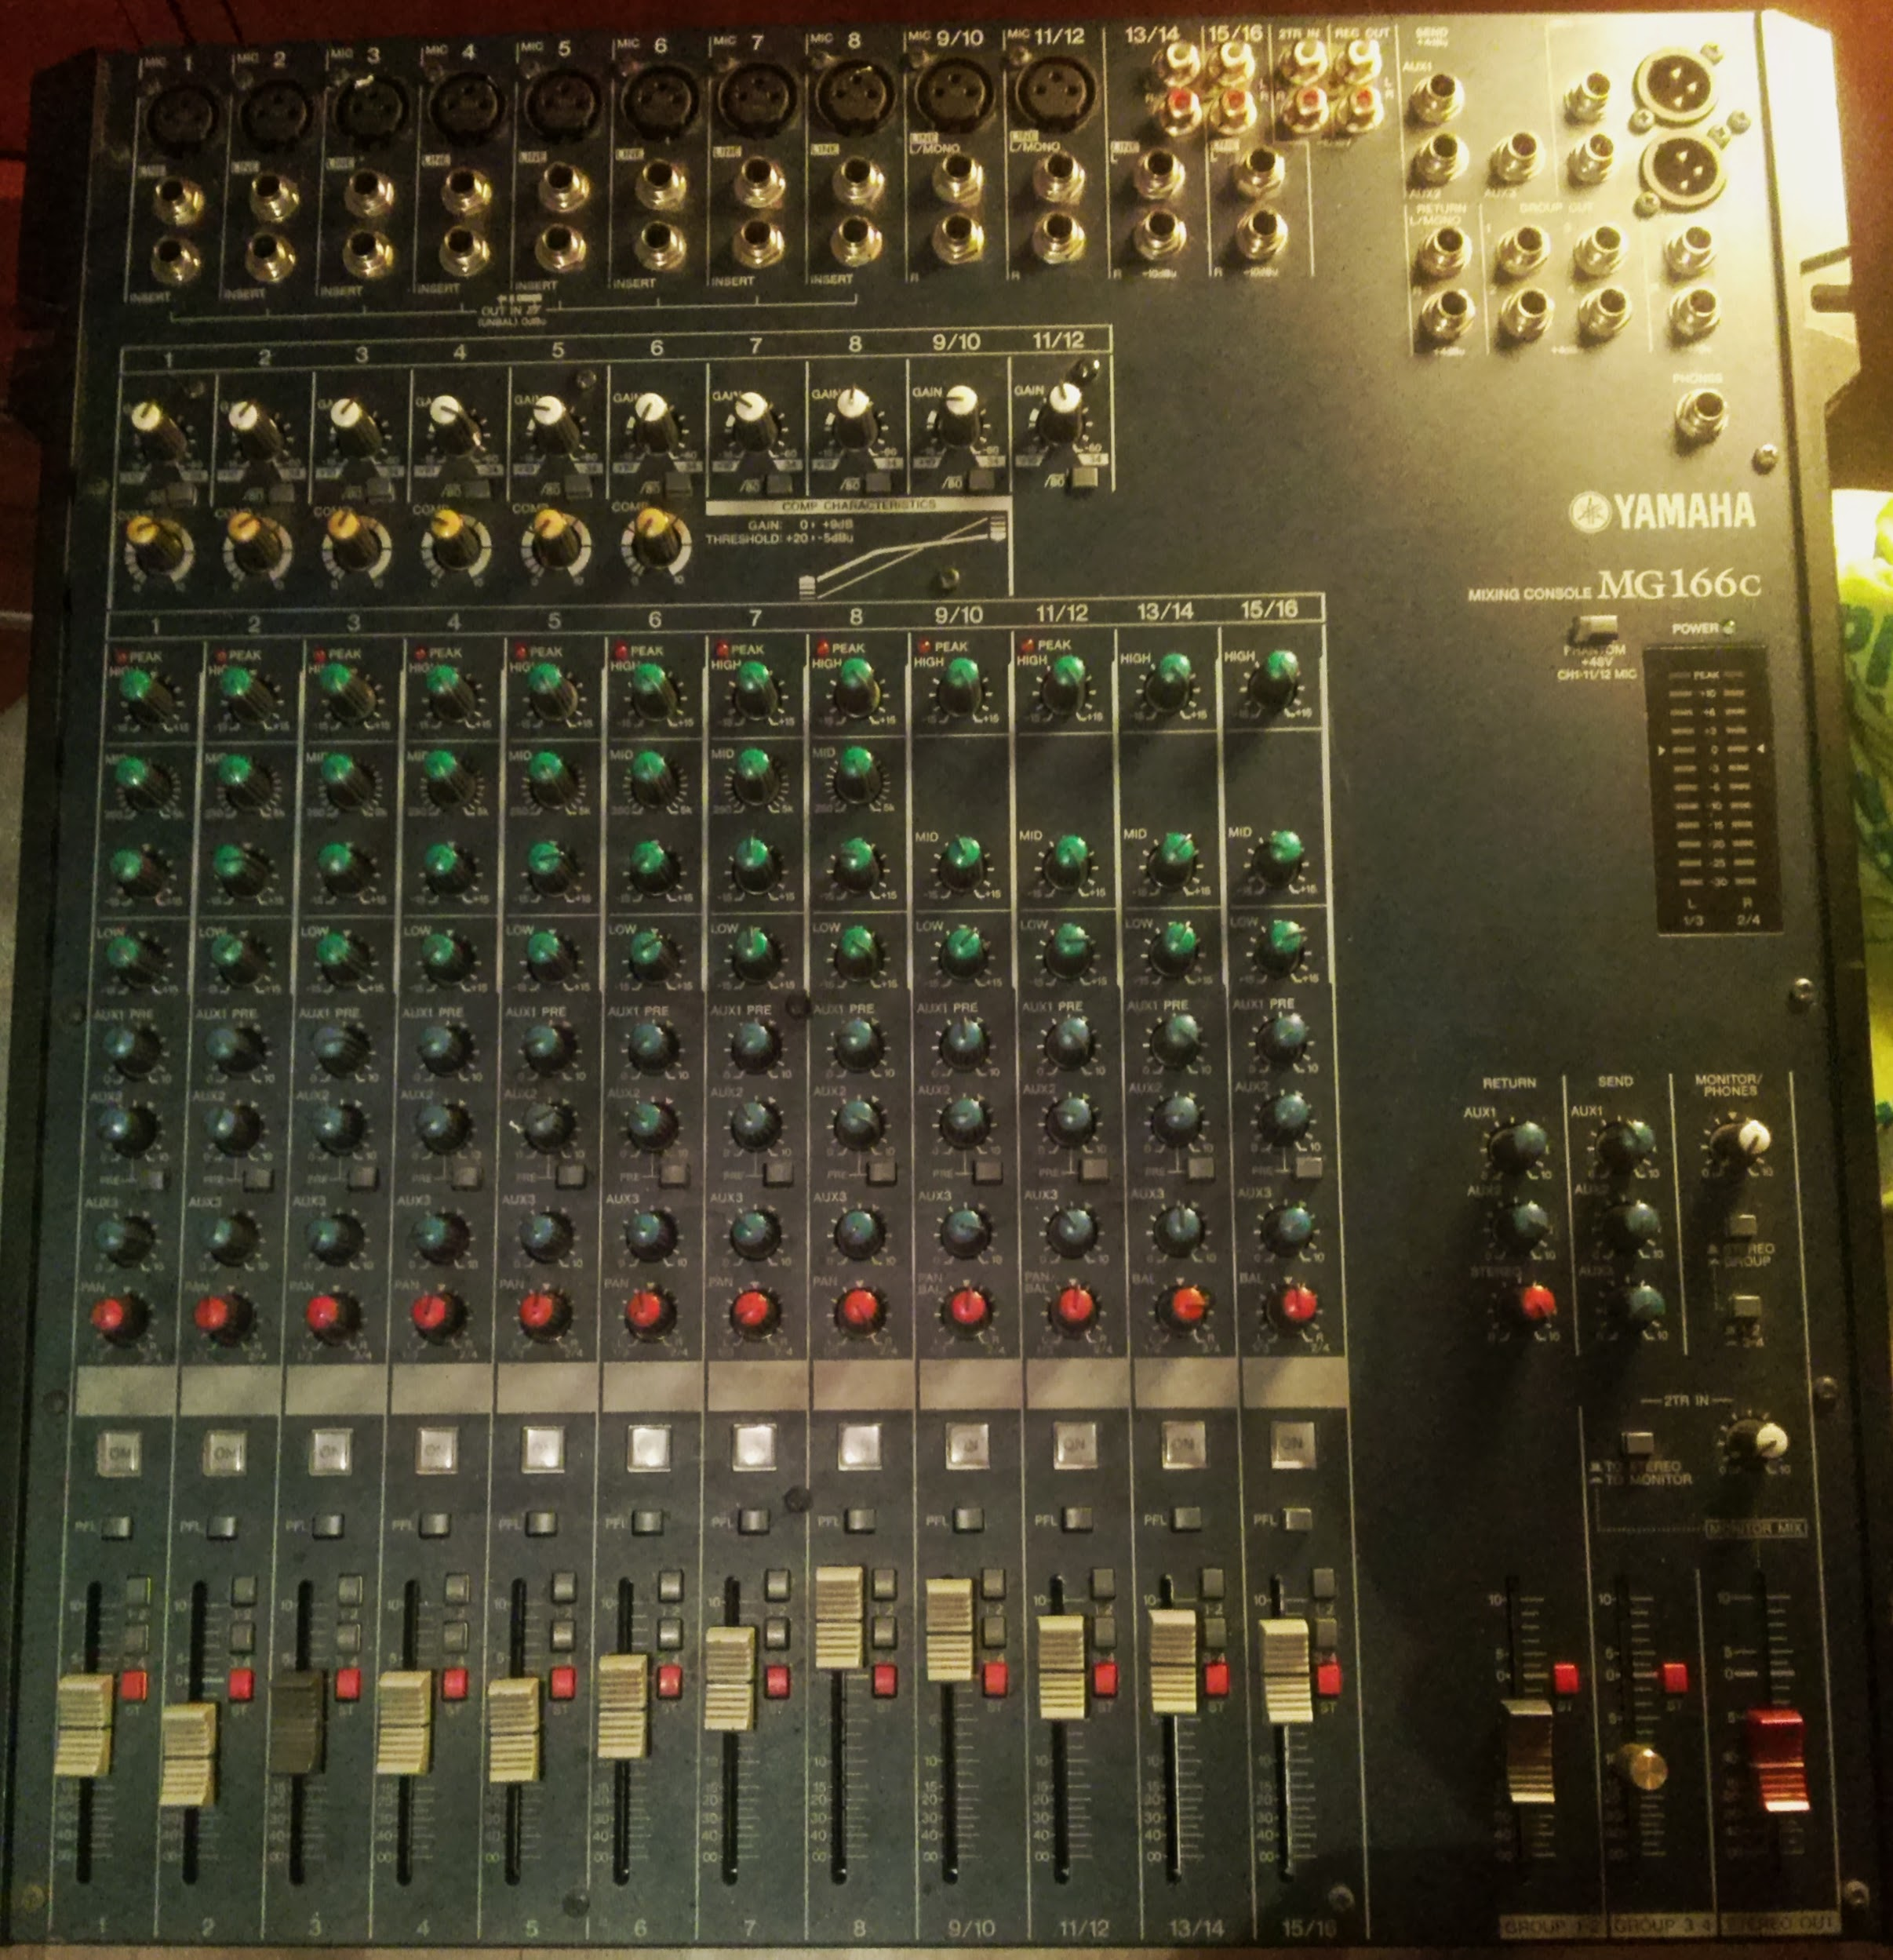 schemat /aukcje/Yamaha-MG166C-mikser-mixing-console CAM03318.jpg